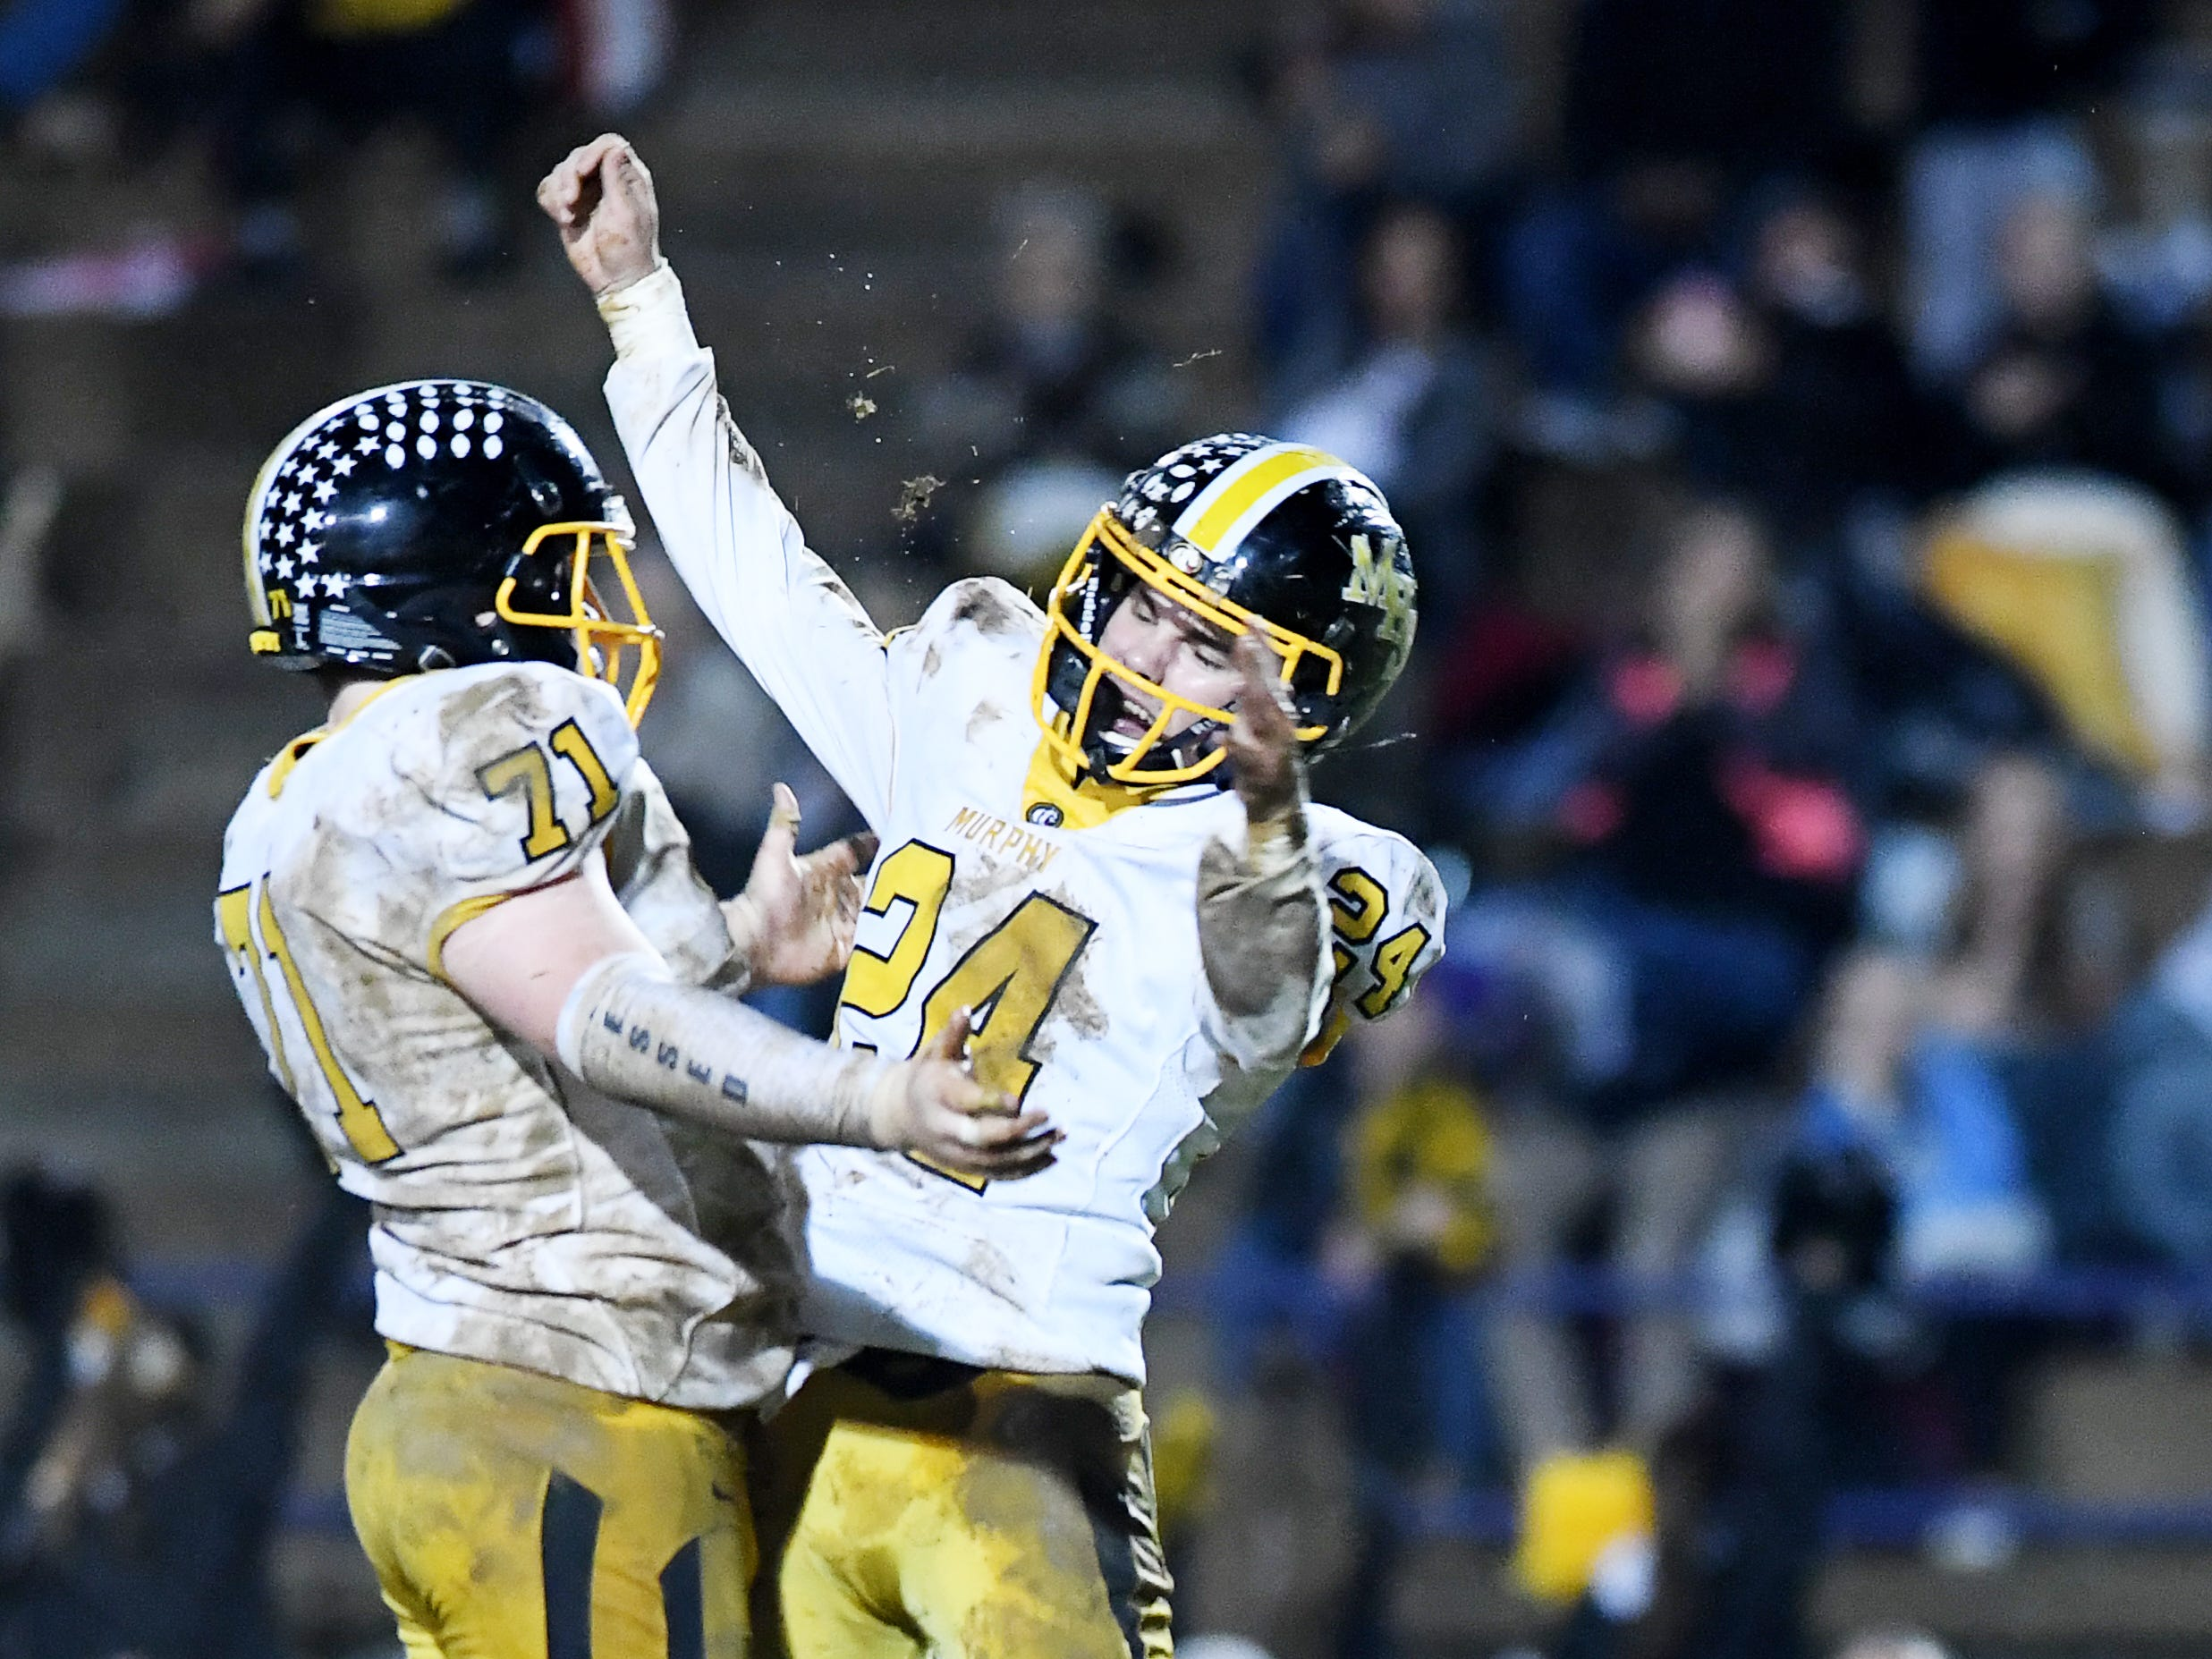 Murphy's Dallas Rayburn, left, and Ray Rathburn celebrate during in the  third round playoff game against Mitchell in Bakersville Nov. 30, 2018. Murphy won, 33-29.